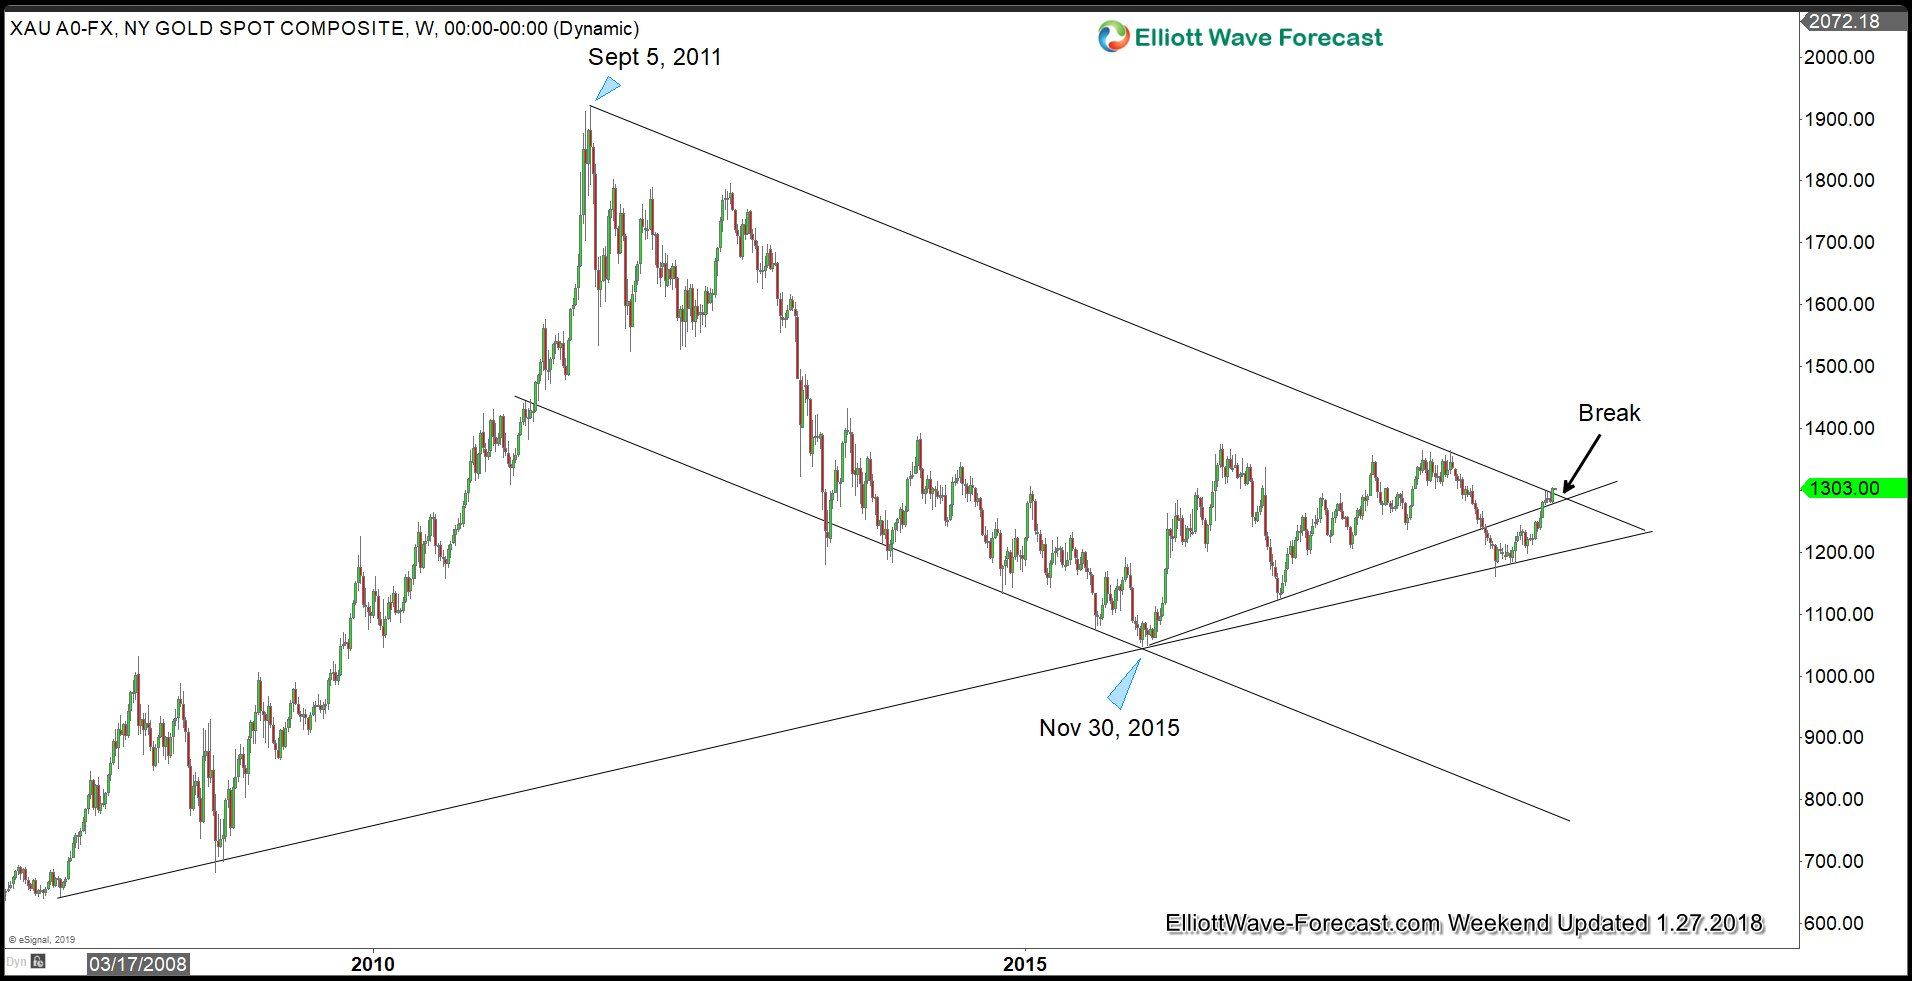 Break above $1300 in Gold Forms Elliott Wave Impulse